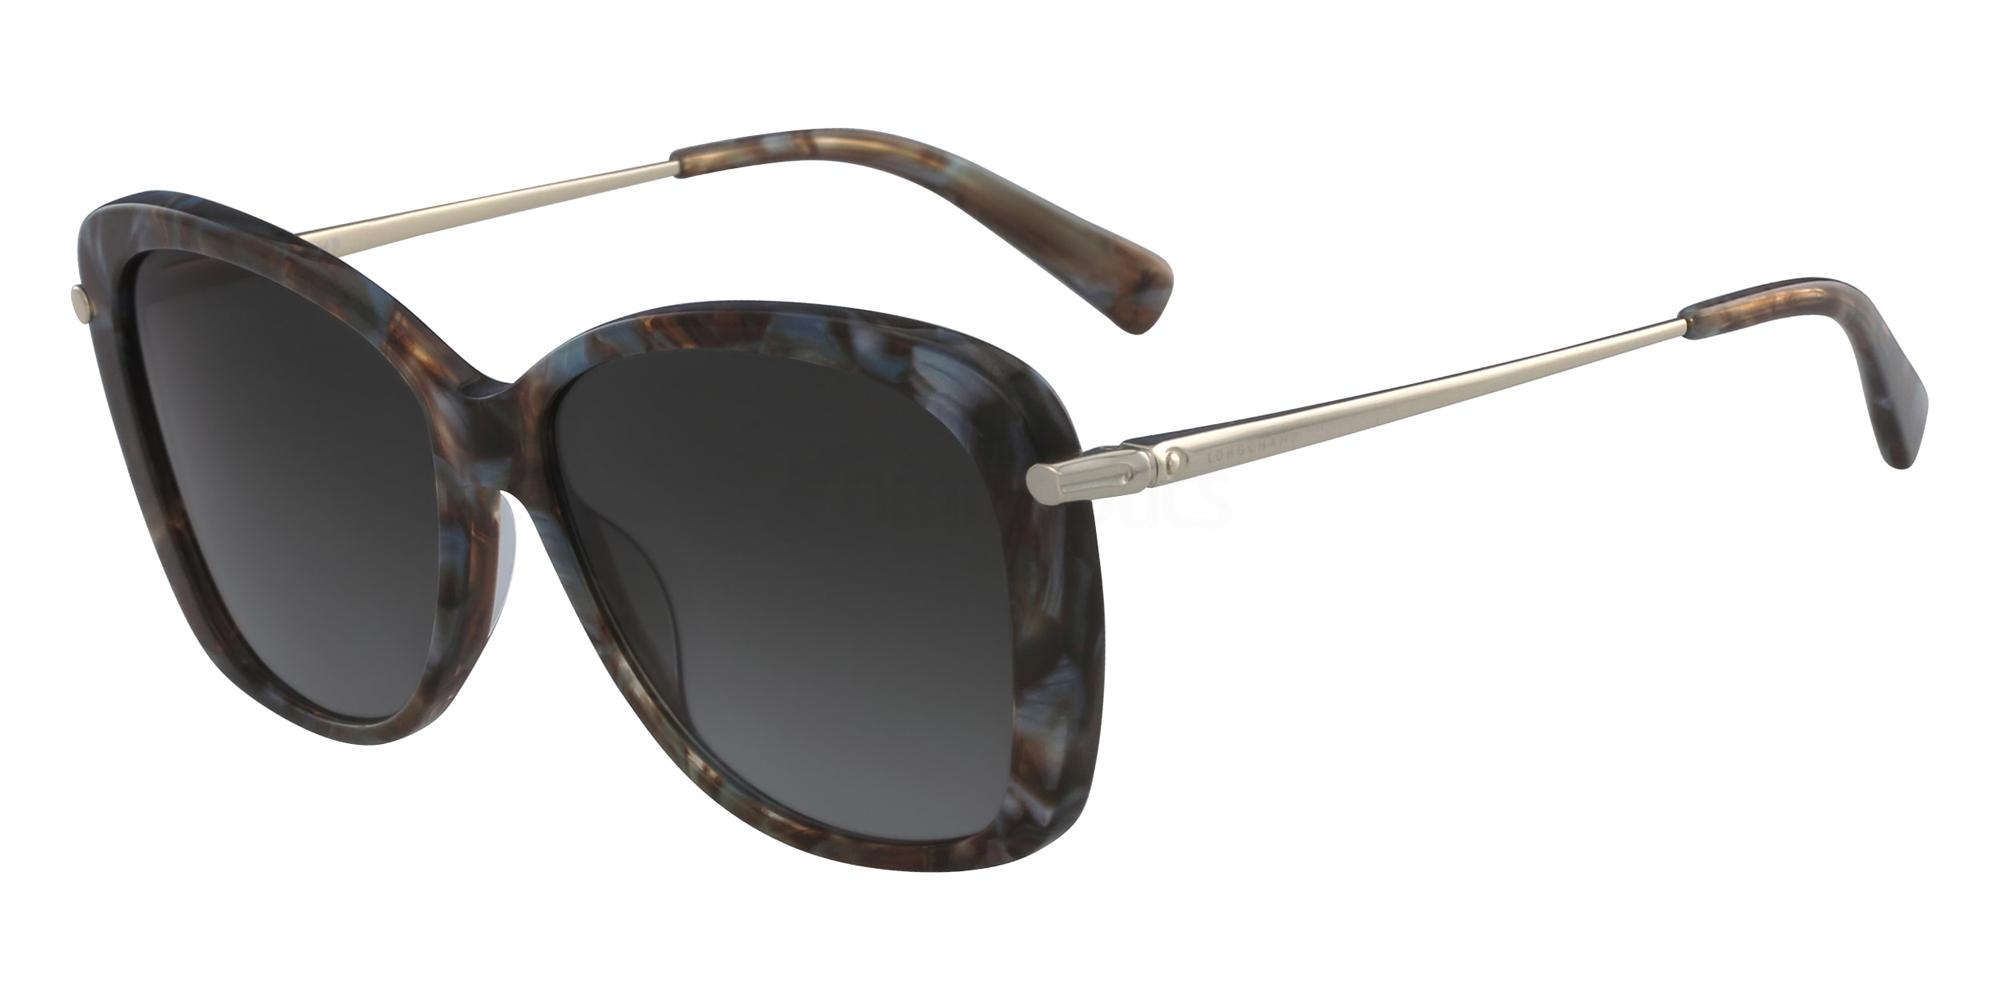 004 LO616S Sunglasses, LONGCHAMP